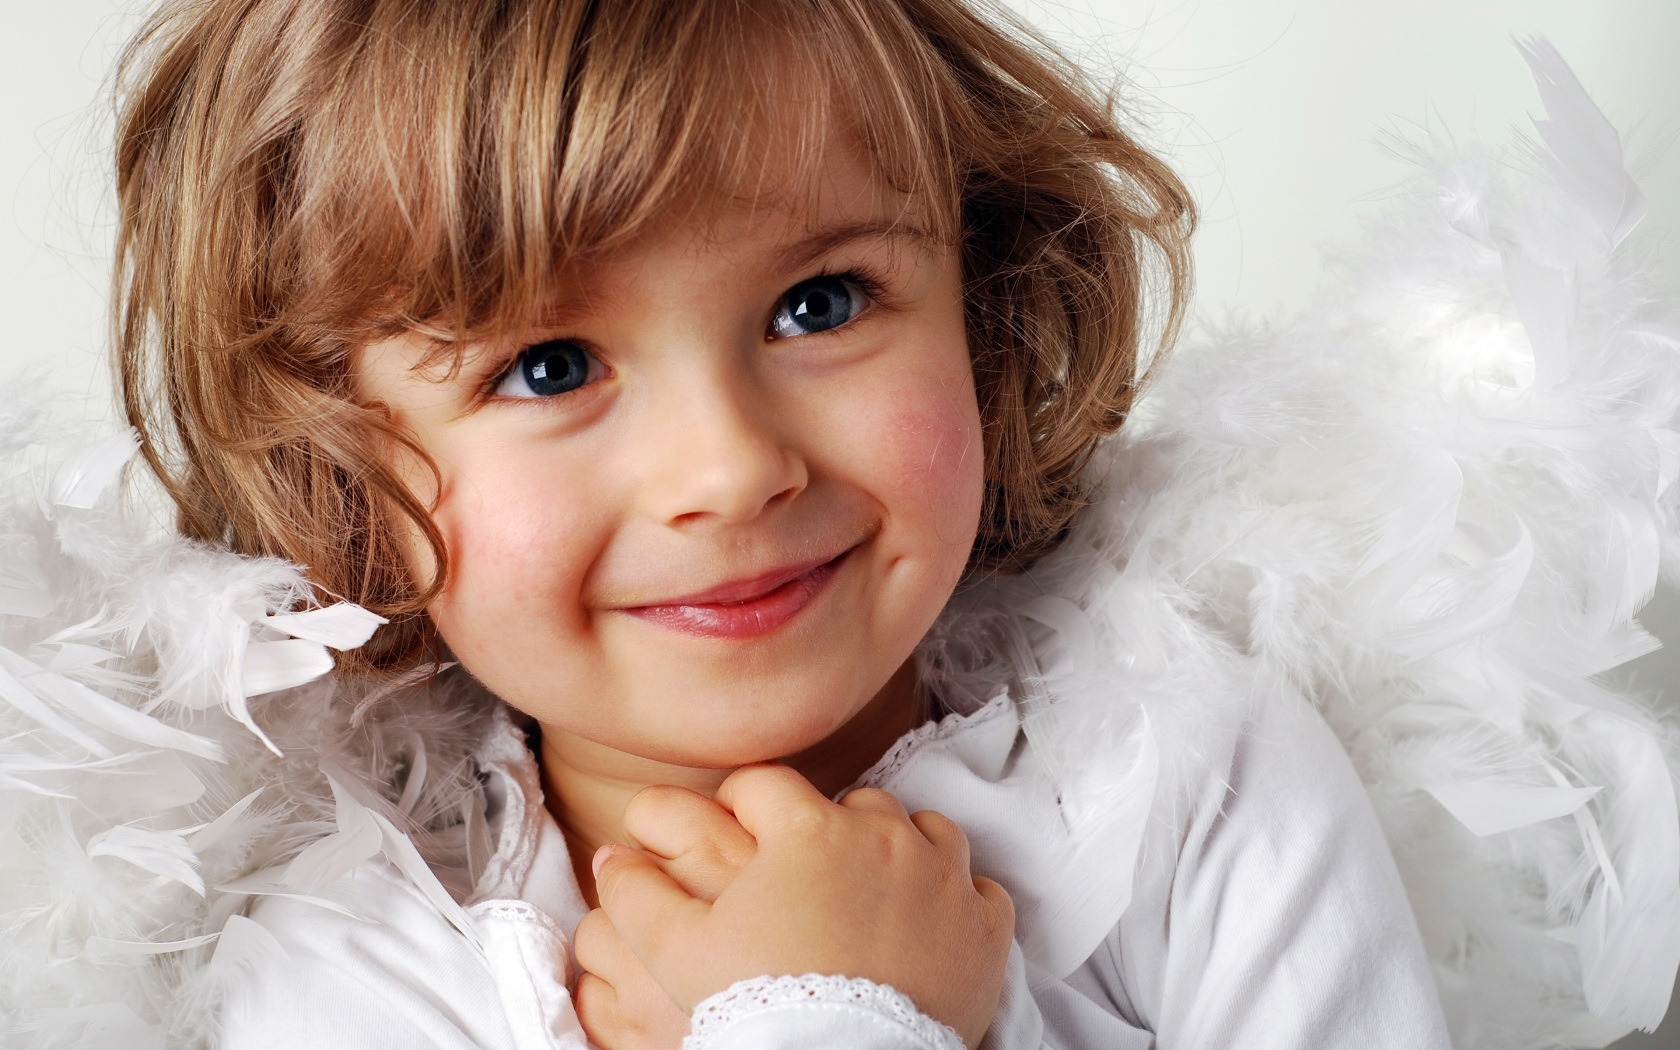 Cute Babies Wallpapers Free Download: Cute Haircut Baby Girl Wallpapers In Jpg Format For Free